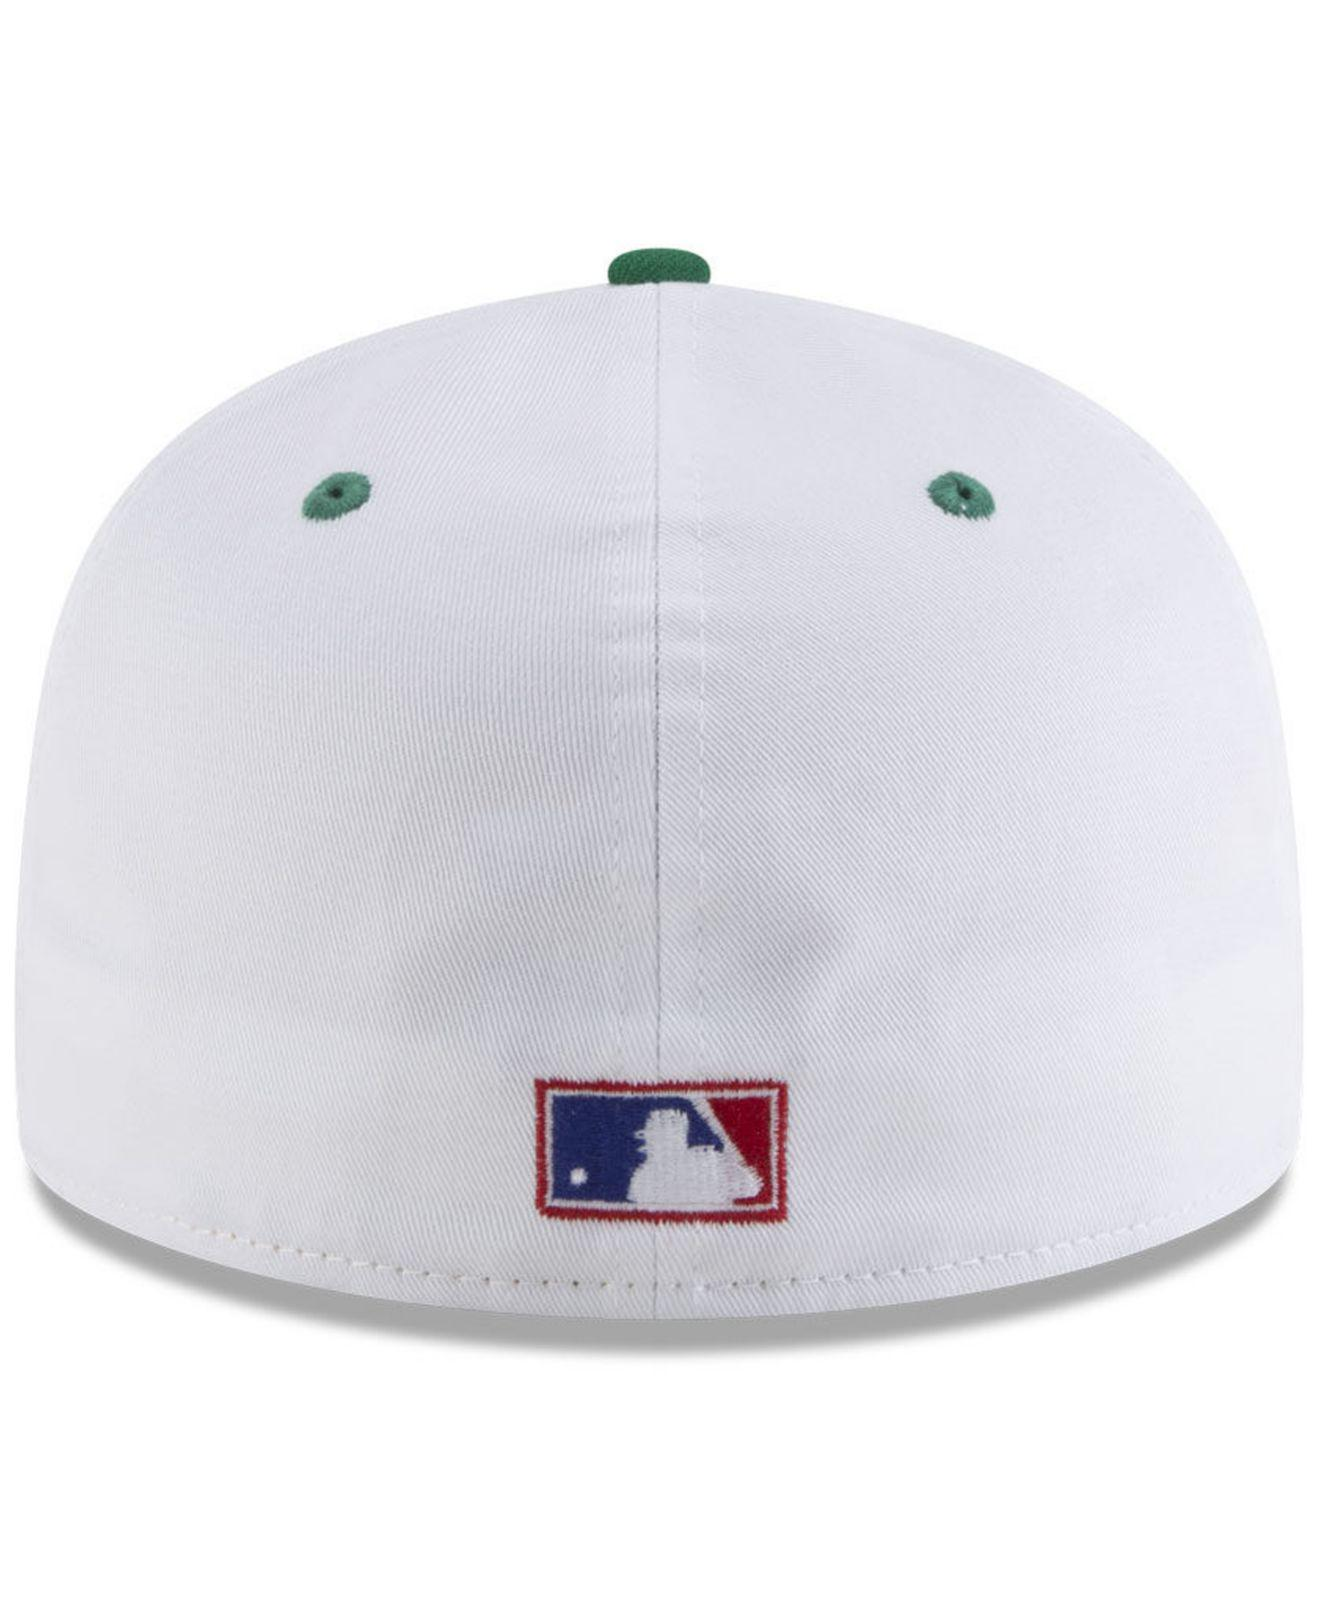 uk availability 1353c 703b0 ... italy san diego padres retro diamond 59fifty fitted cap for men lyst.  view fullscreen 68932